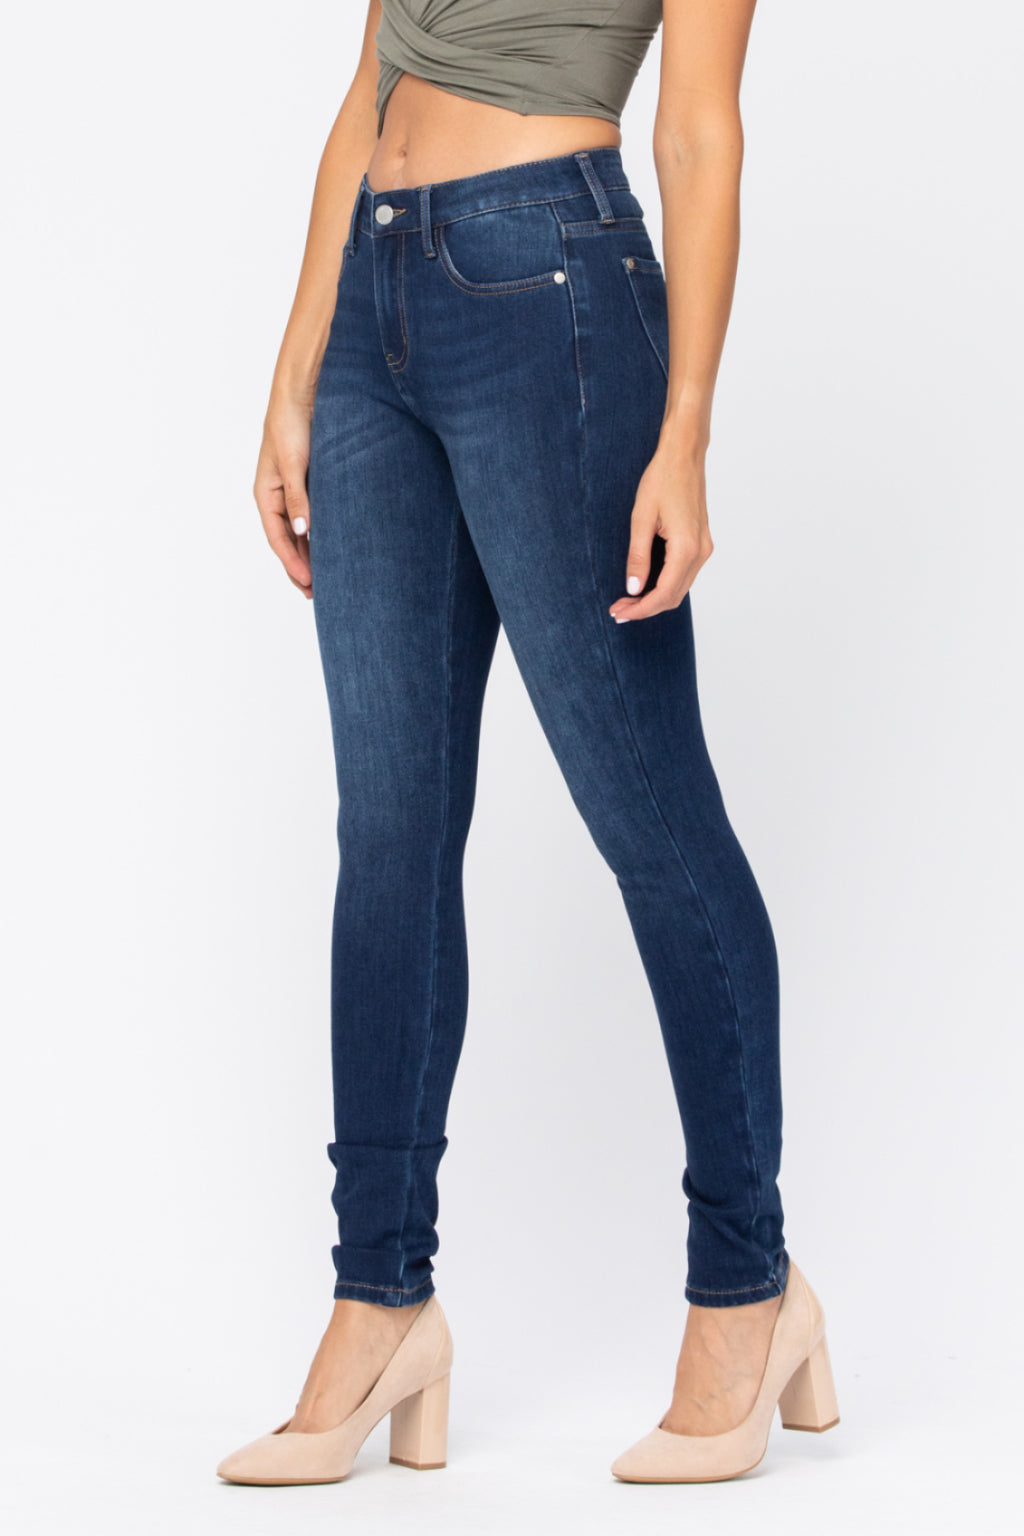 ThermaDenim Dark Thermal Skinny - PLUS